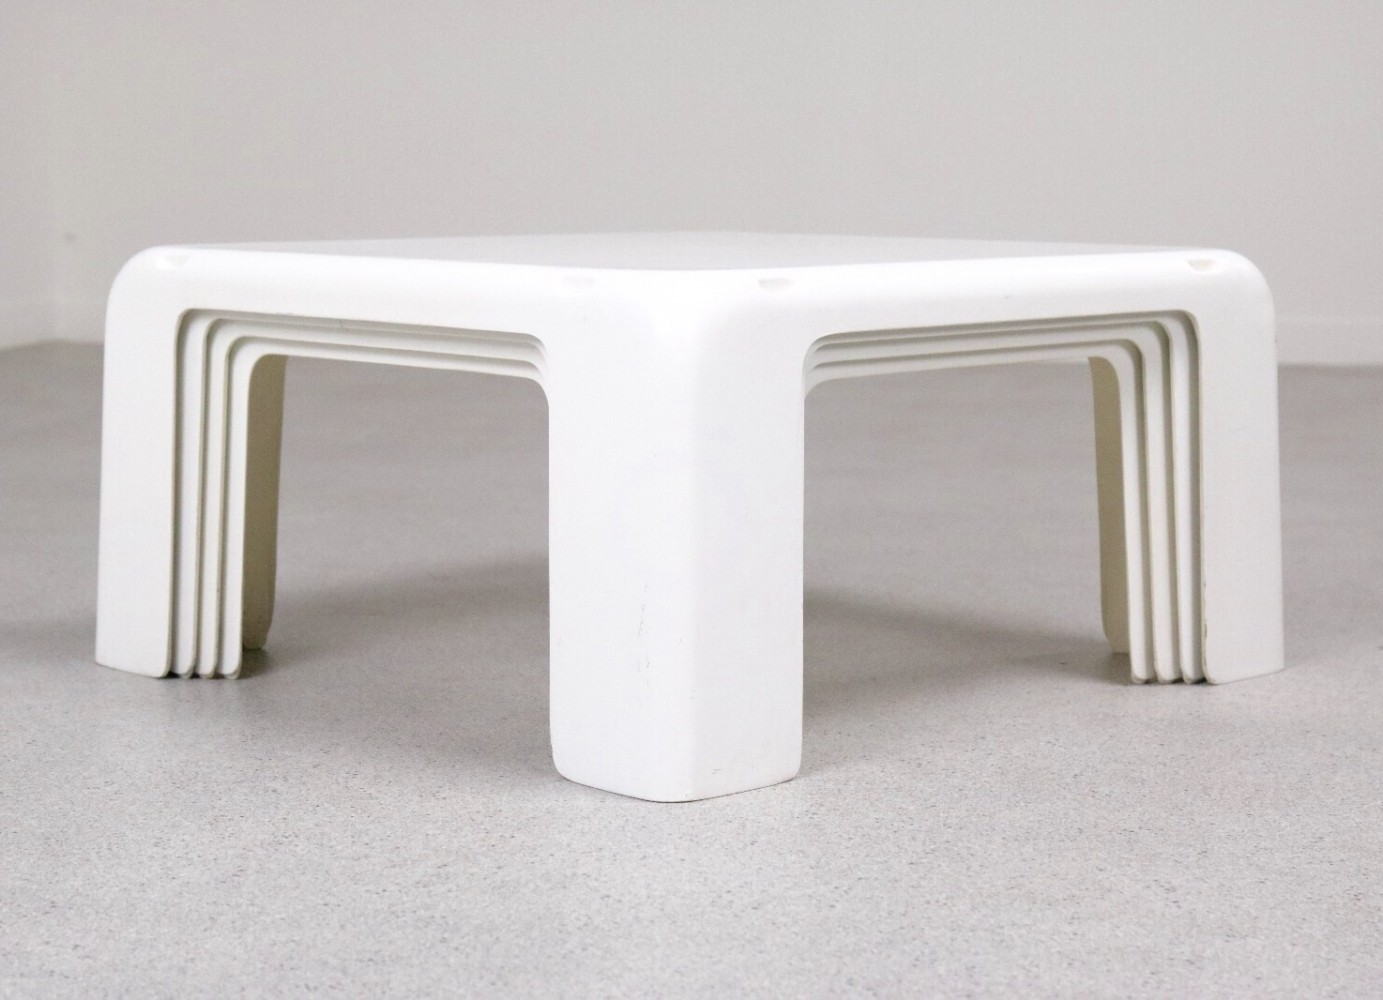 Set of 4 nesting tables by mario bellini for b b italia - B b italia link table ...